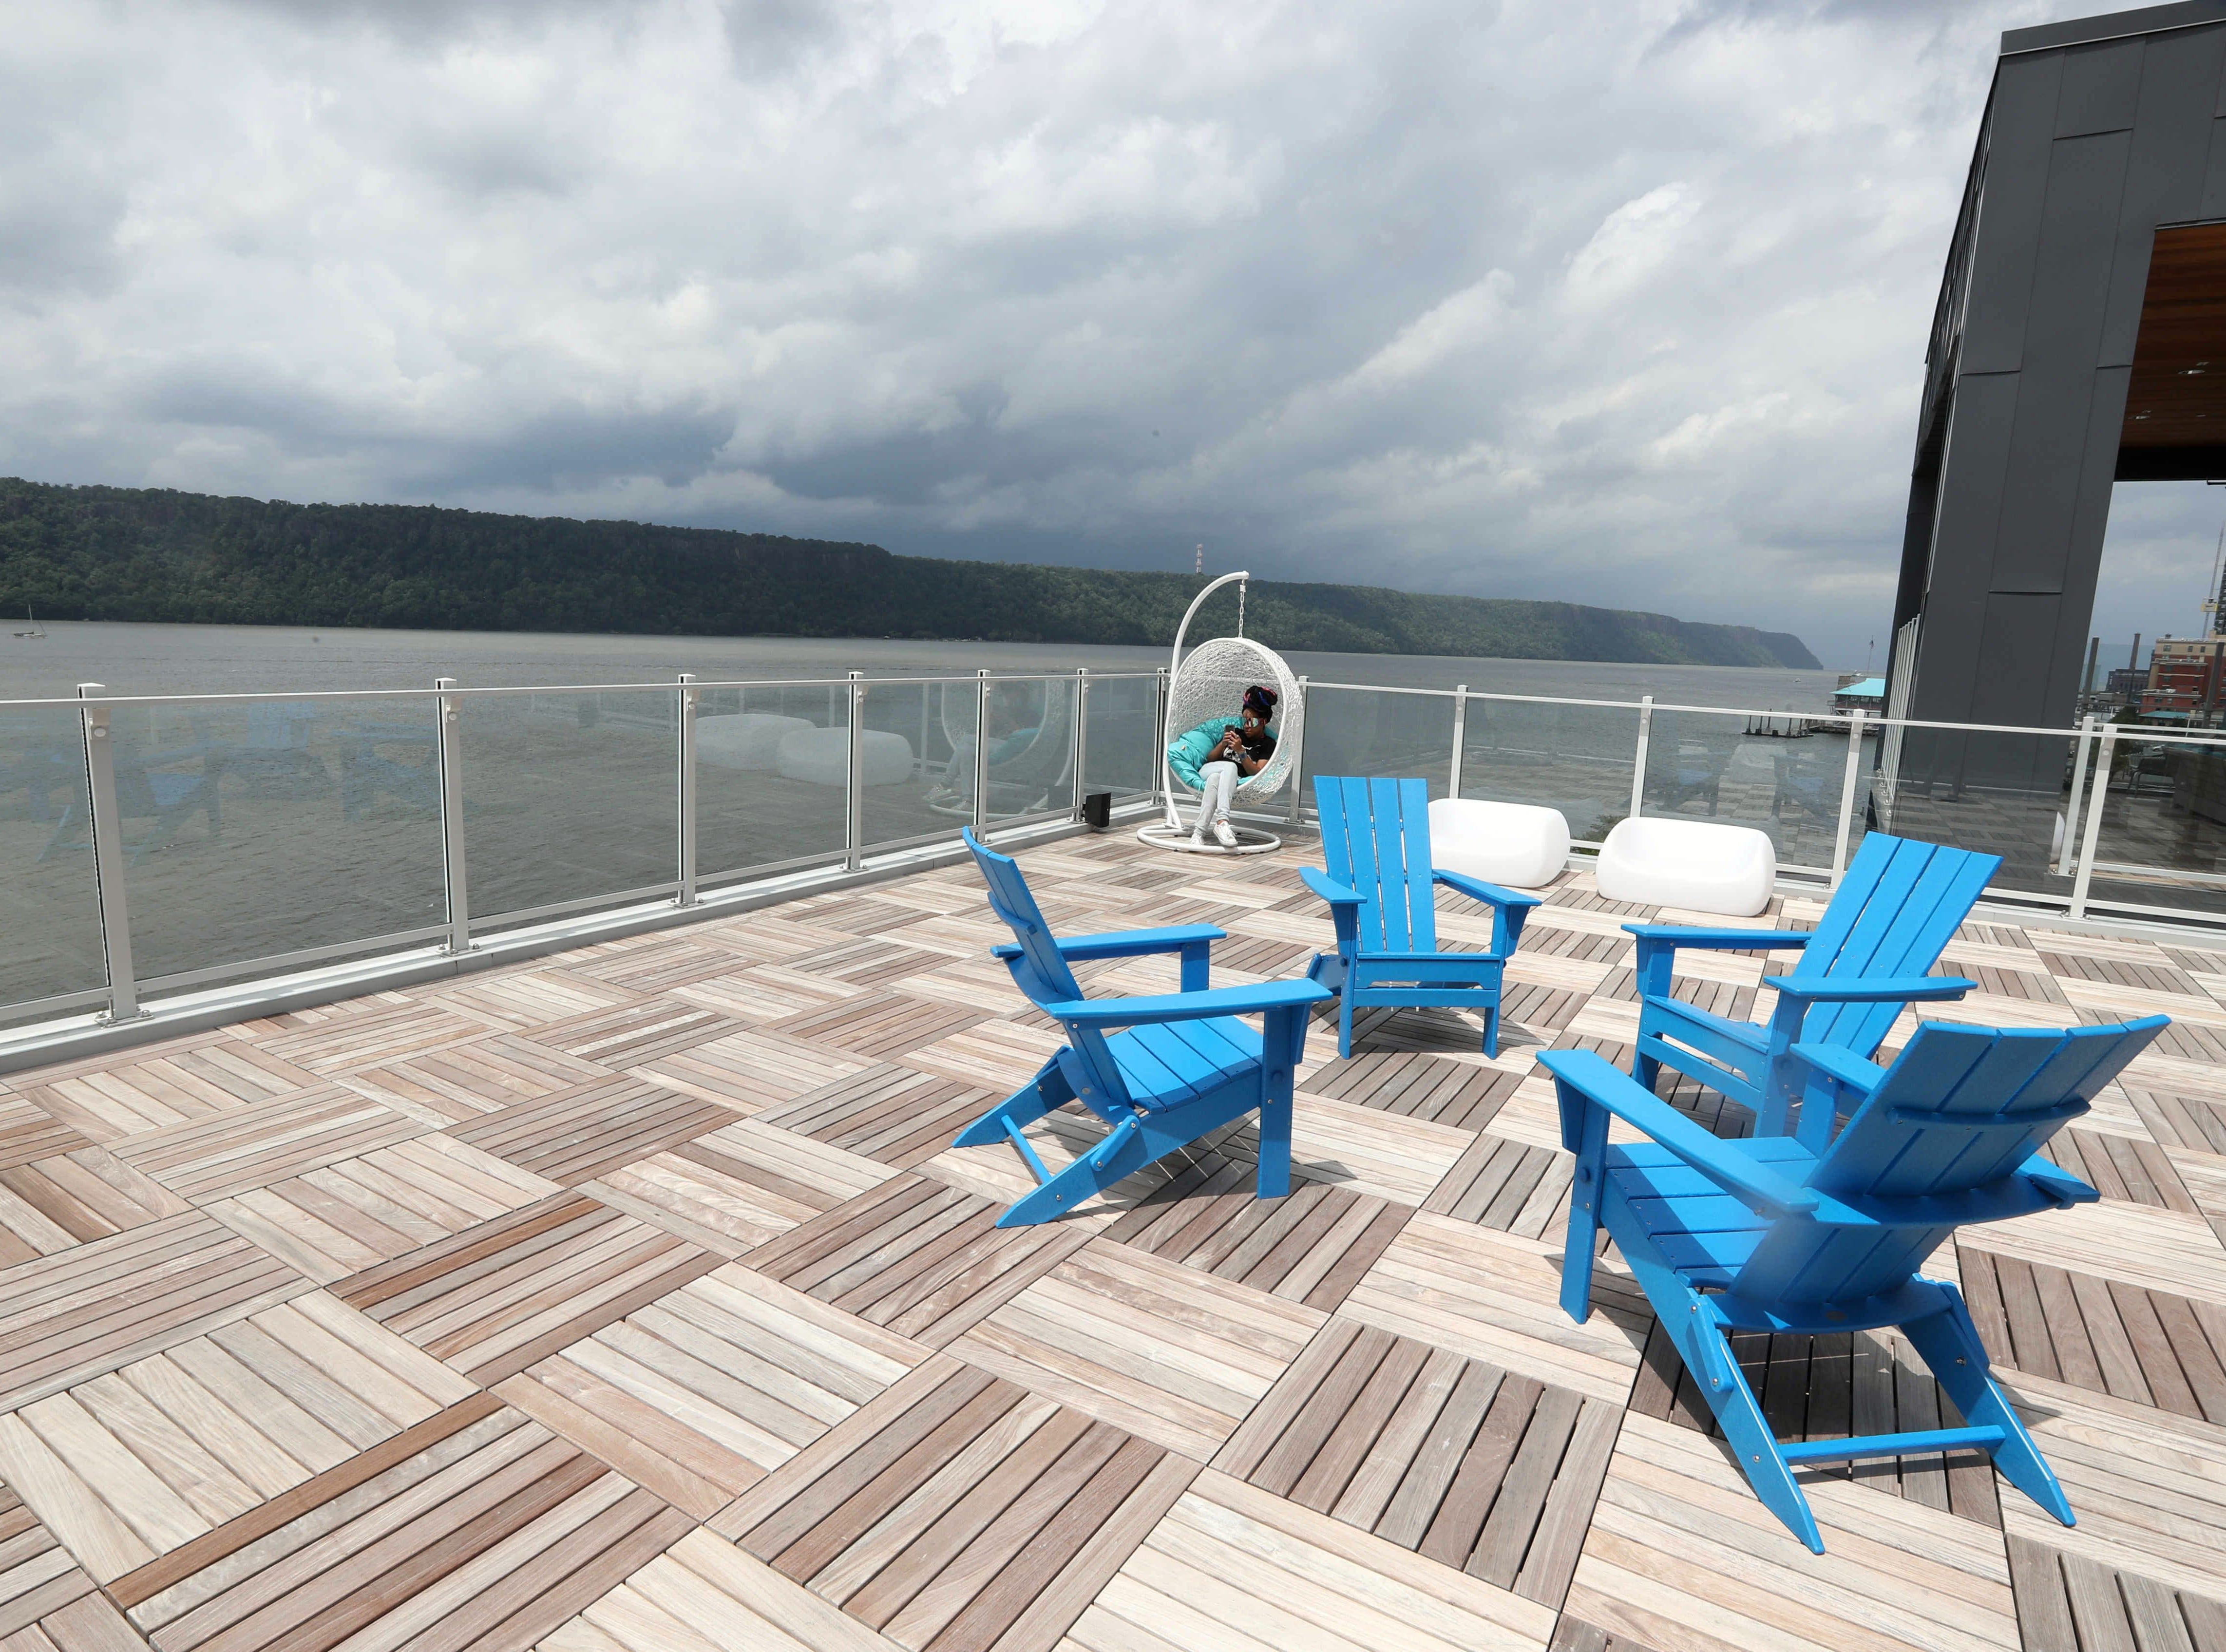 Crystal Barnes spends time on the deck of the sky lounge at the Modera, a new luxury apartment building on the Yonkers riverfront Aug. 1, 2018. The Modera, which opened in January, will have over three-hundred studio, one-bedroom, and two-bedroom apartments when all when the building is totally completed.